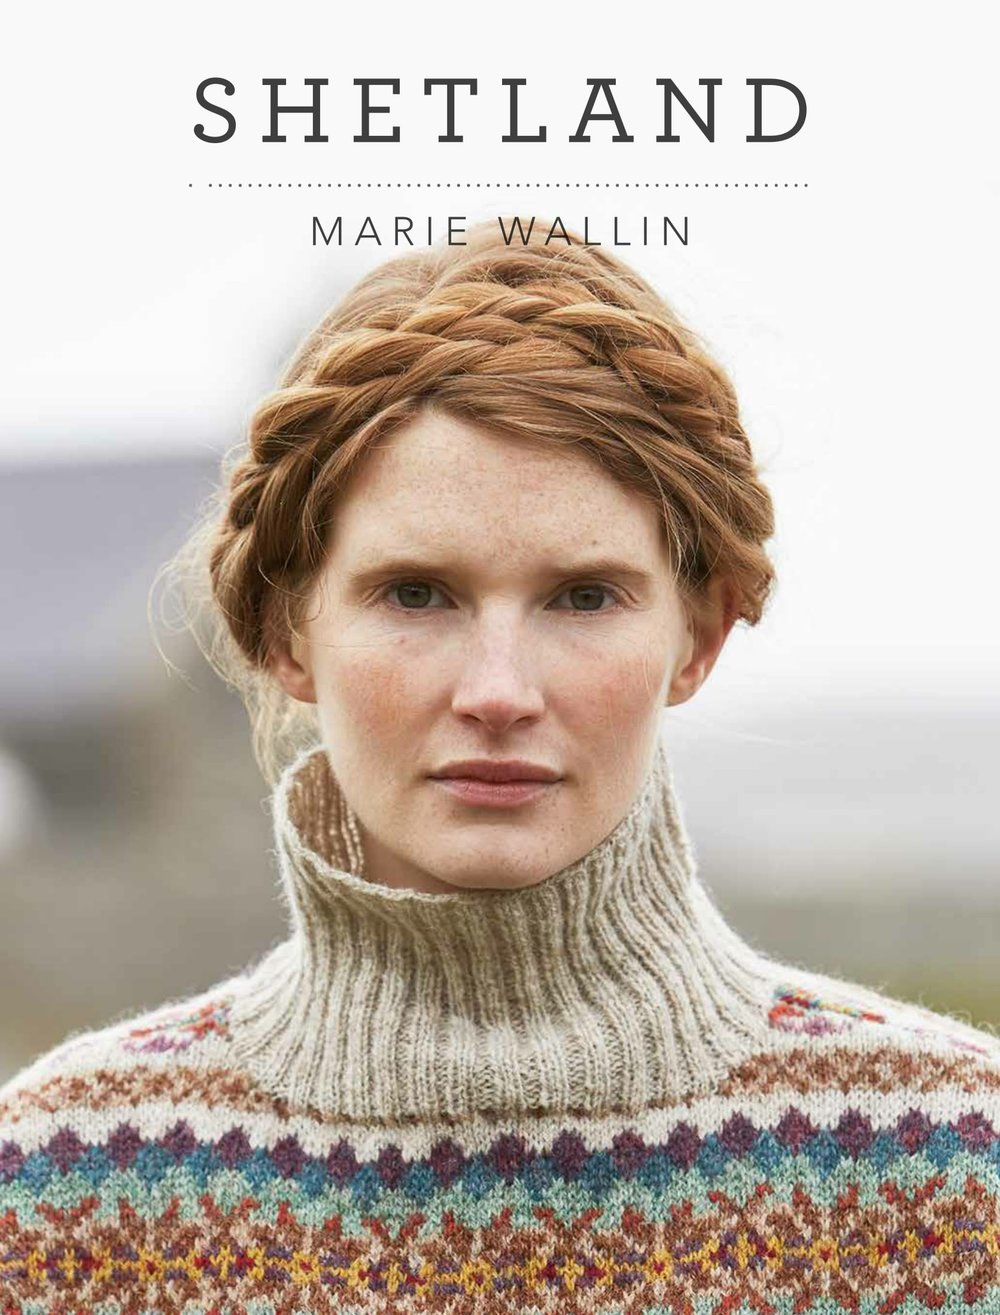 Marie Wallin's new book Shetland is a Fair Isle lover's delight.